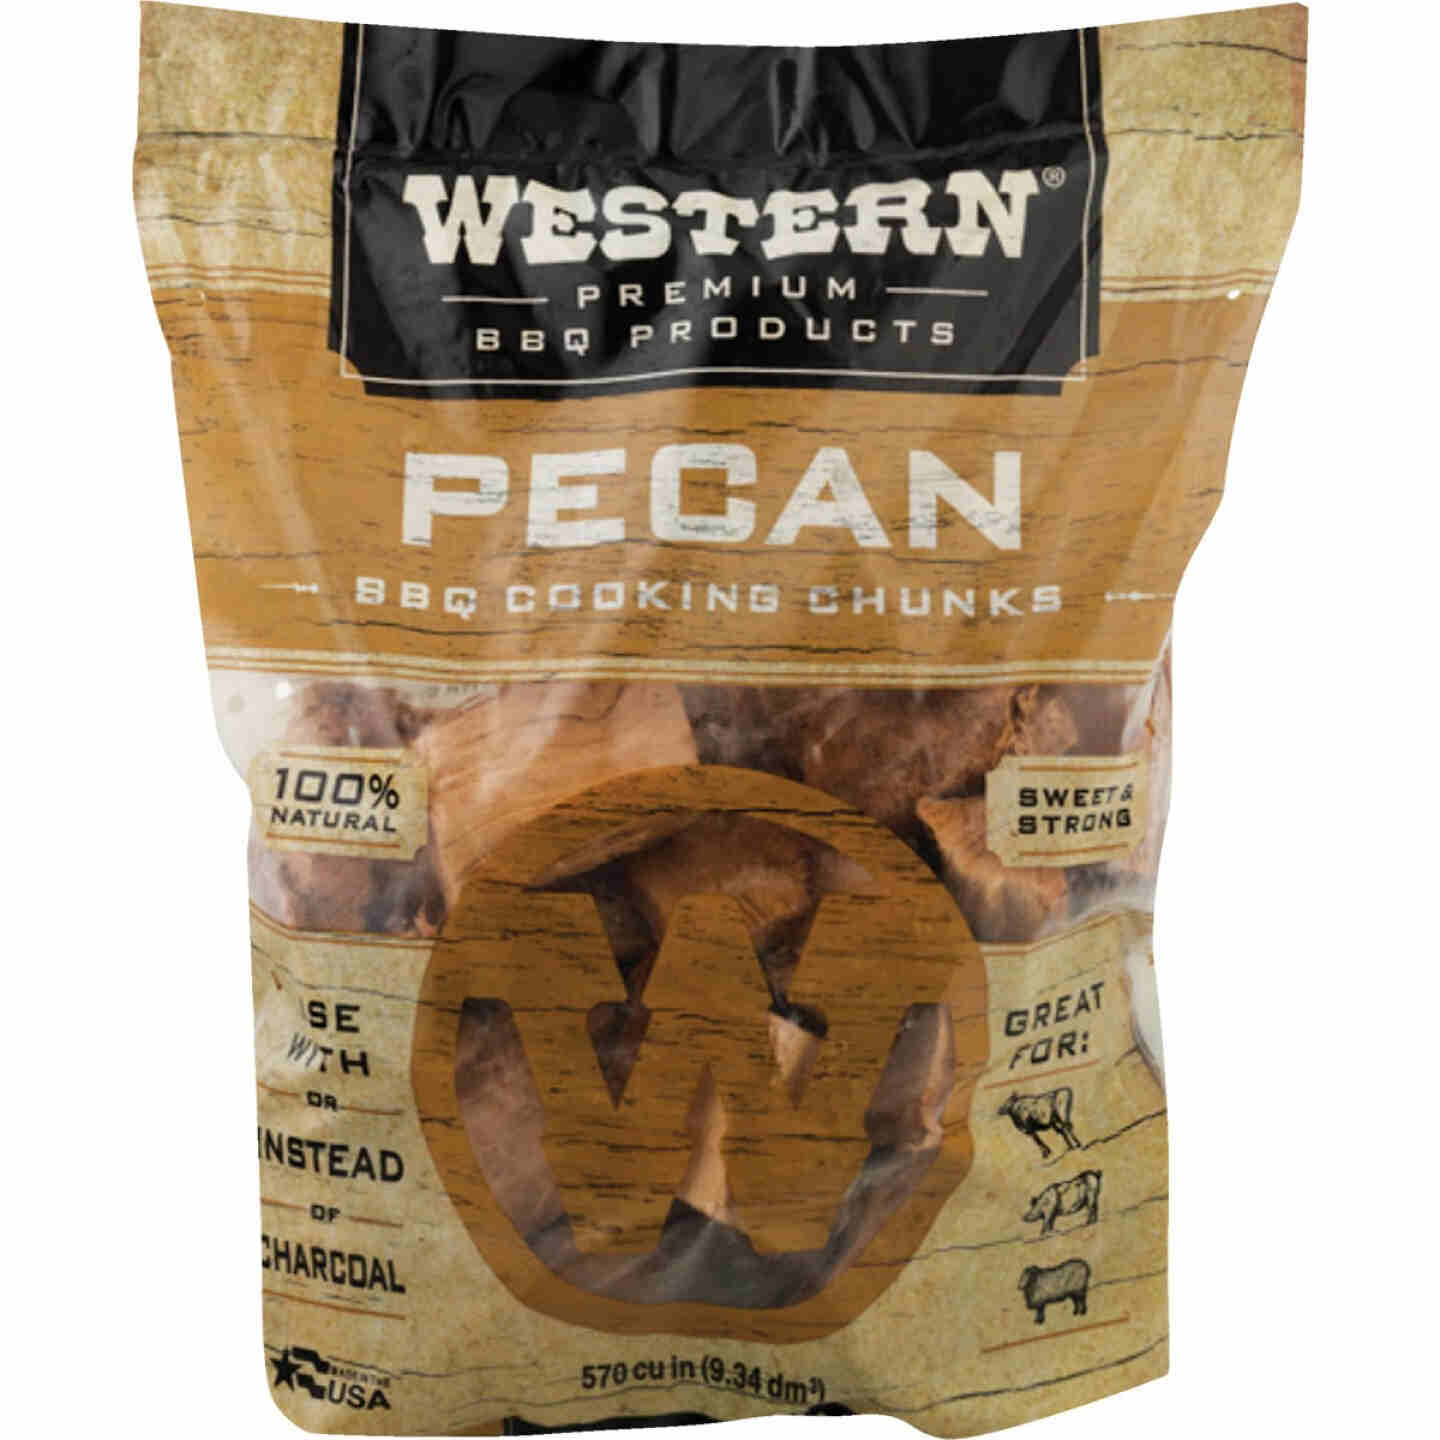 Western 6 Lb. Pecan Wood Smoking Chunks Image 1